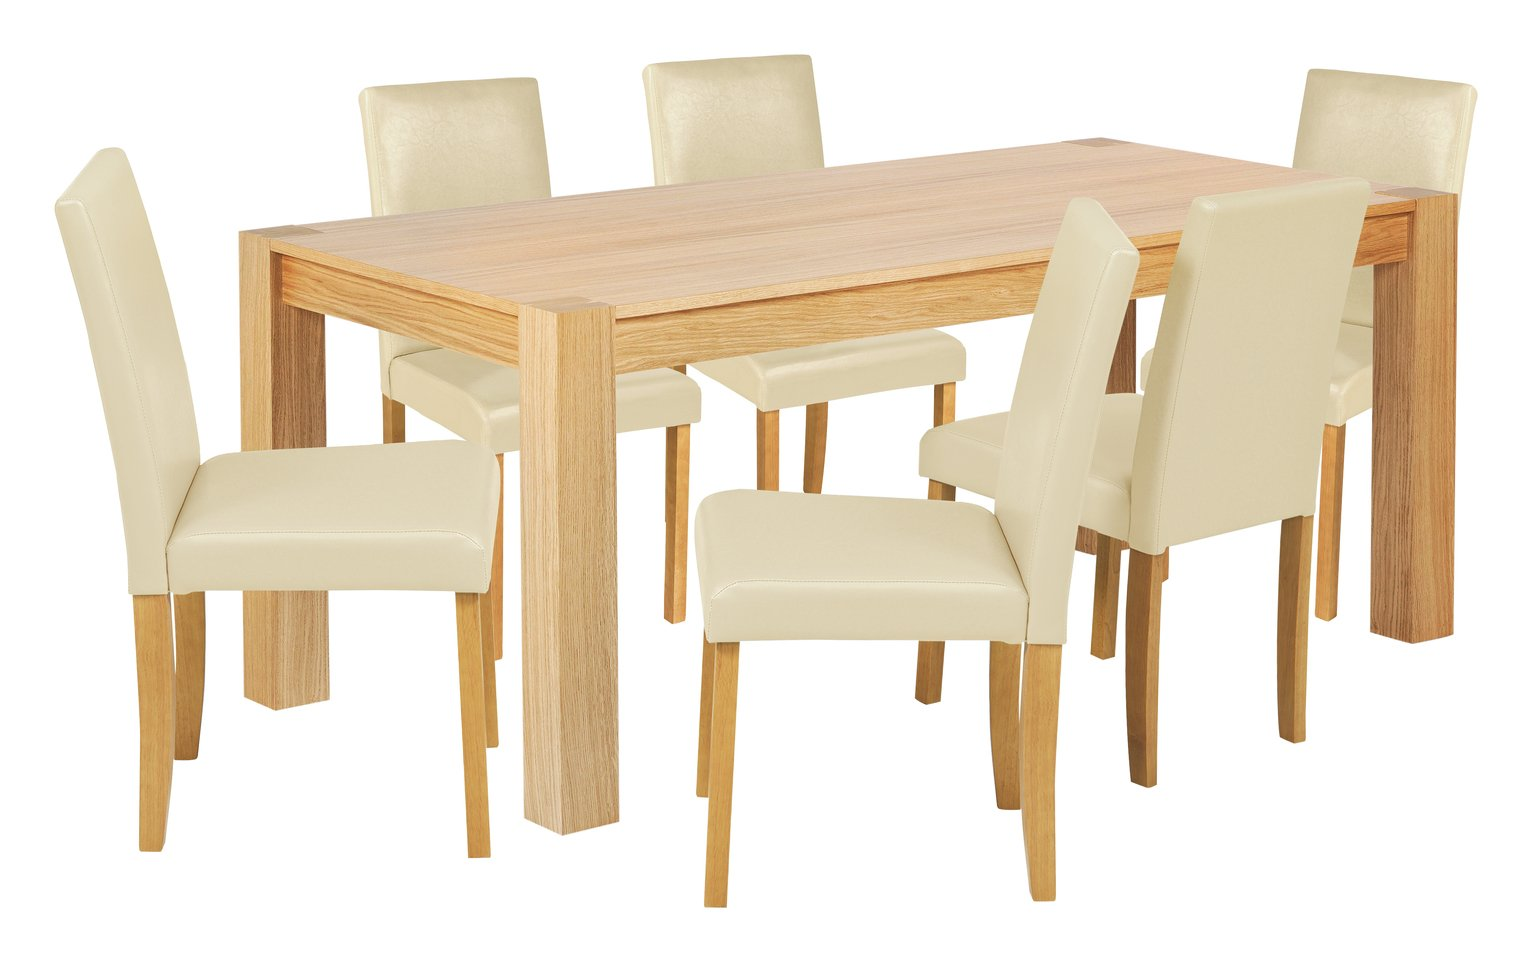 Collection Indiana 180cm Oak Table amp 6 Chairs Cream : 3436389RZ001A from cheapas.co.uk size 1532 x 962 jpeg 111kB